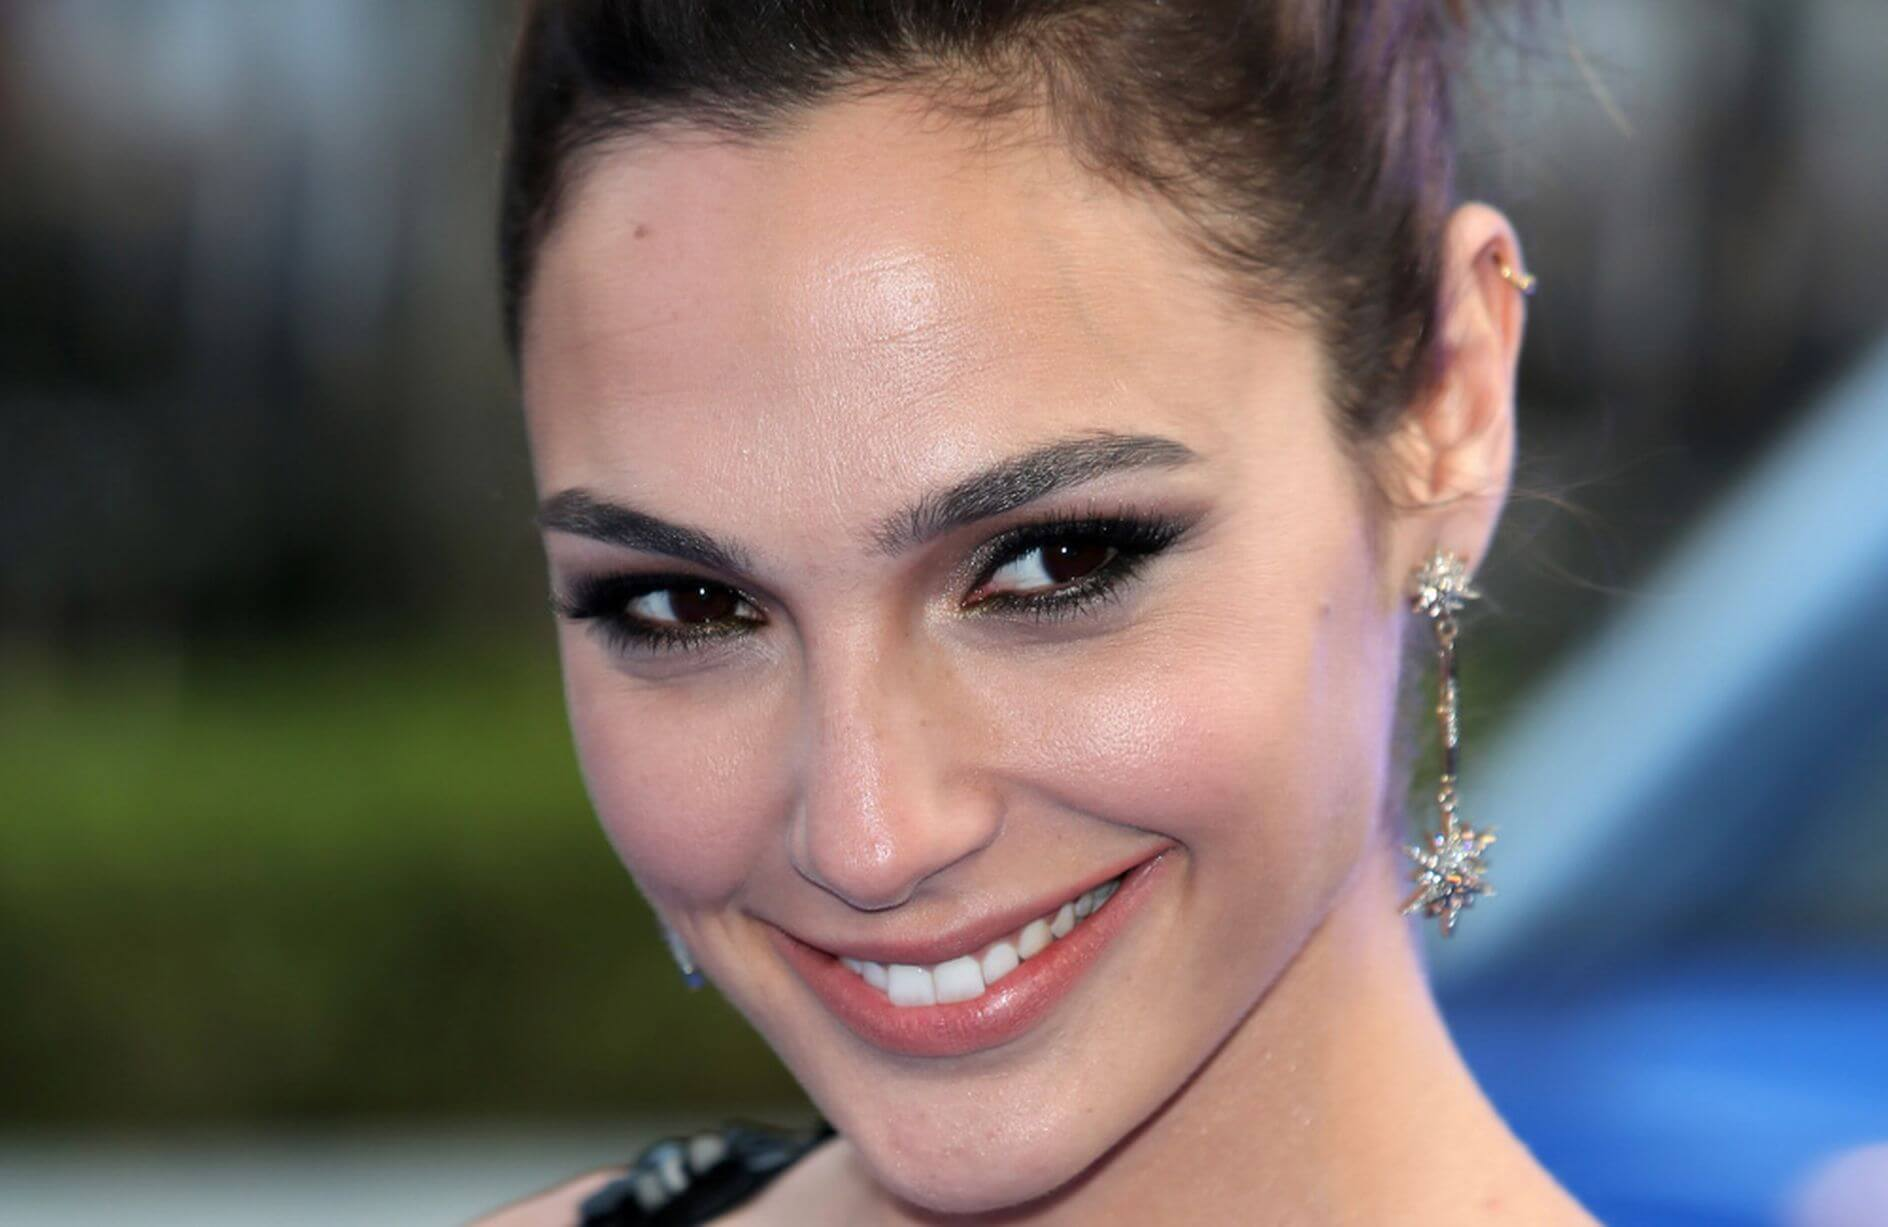 Gal Gadot Face Pics - Gal Gadot Net Worth, Pics, Wallpapers, Career and Biography